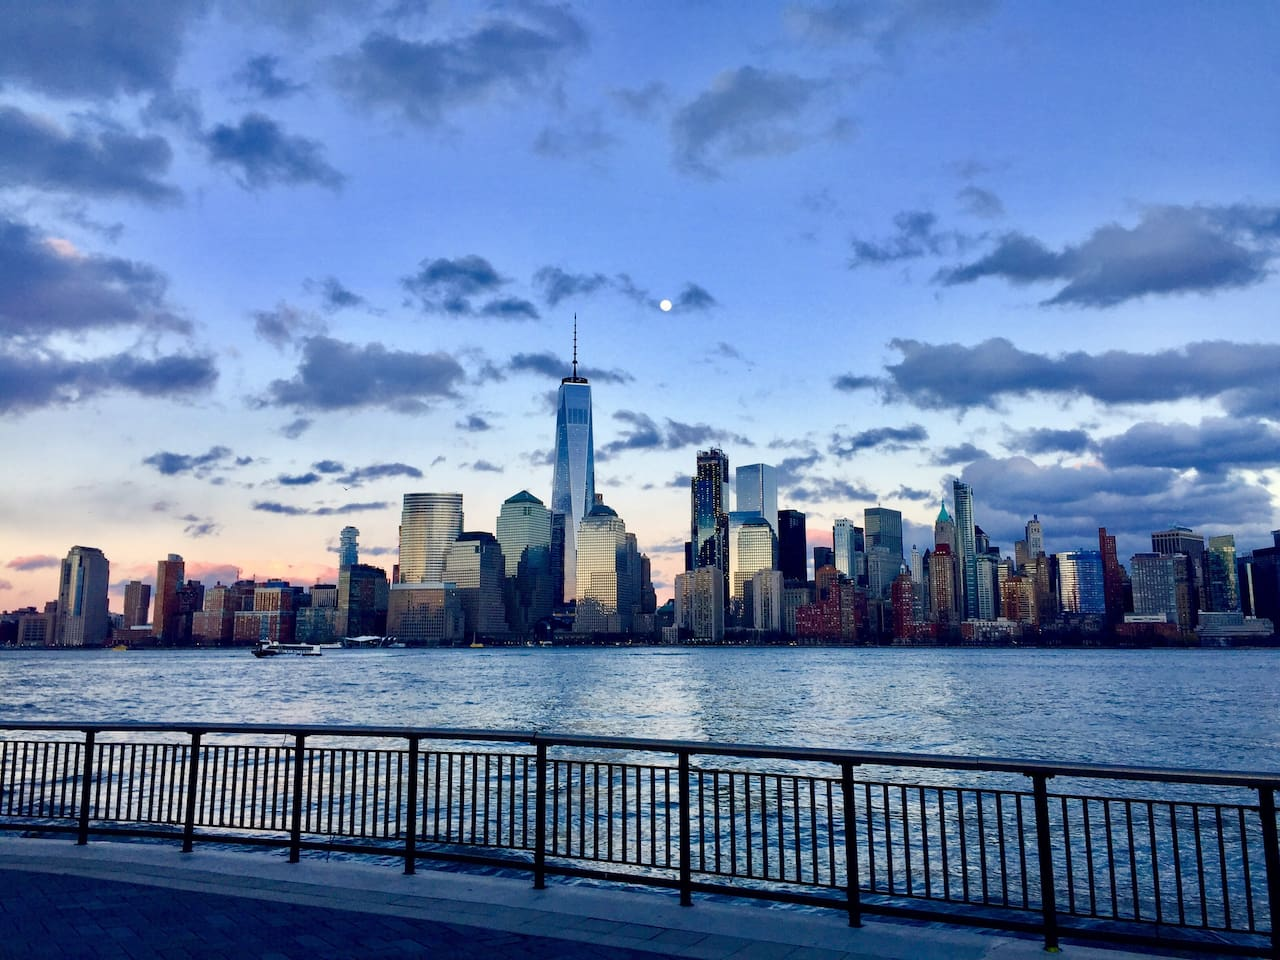 Walk the prominade along the Hudson River and enjoy views of the nyc skyline. 3 minute walk to ny waterway ferry (transportation by boat to Manhattan) and 5 minute walk to exchange place path (subway/train)